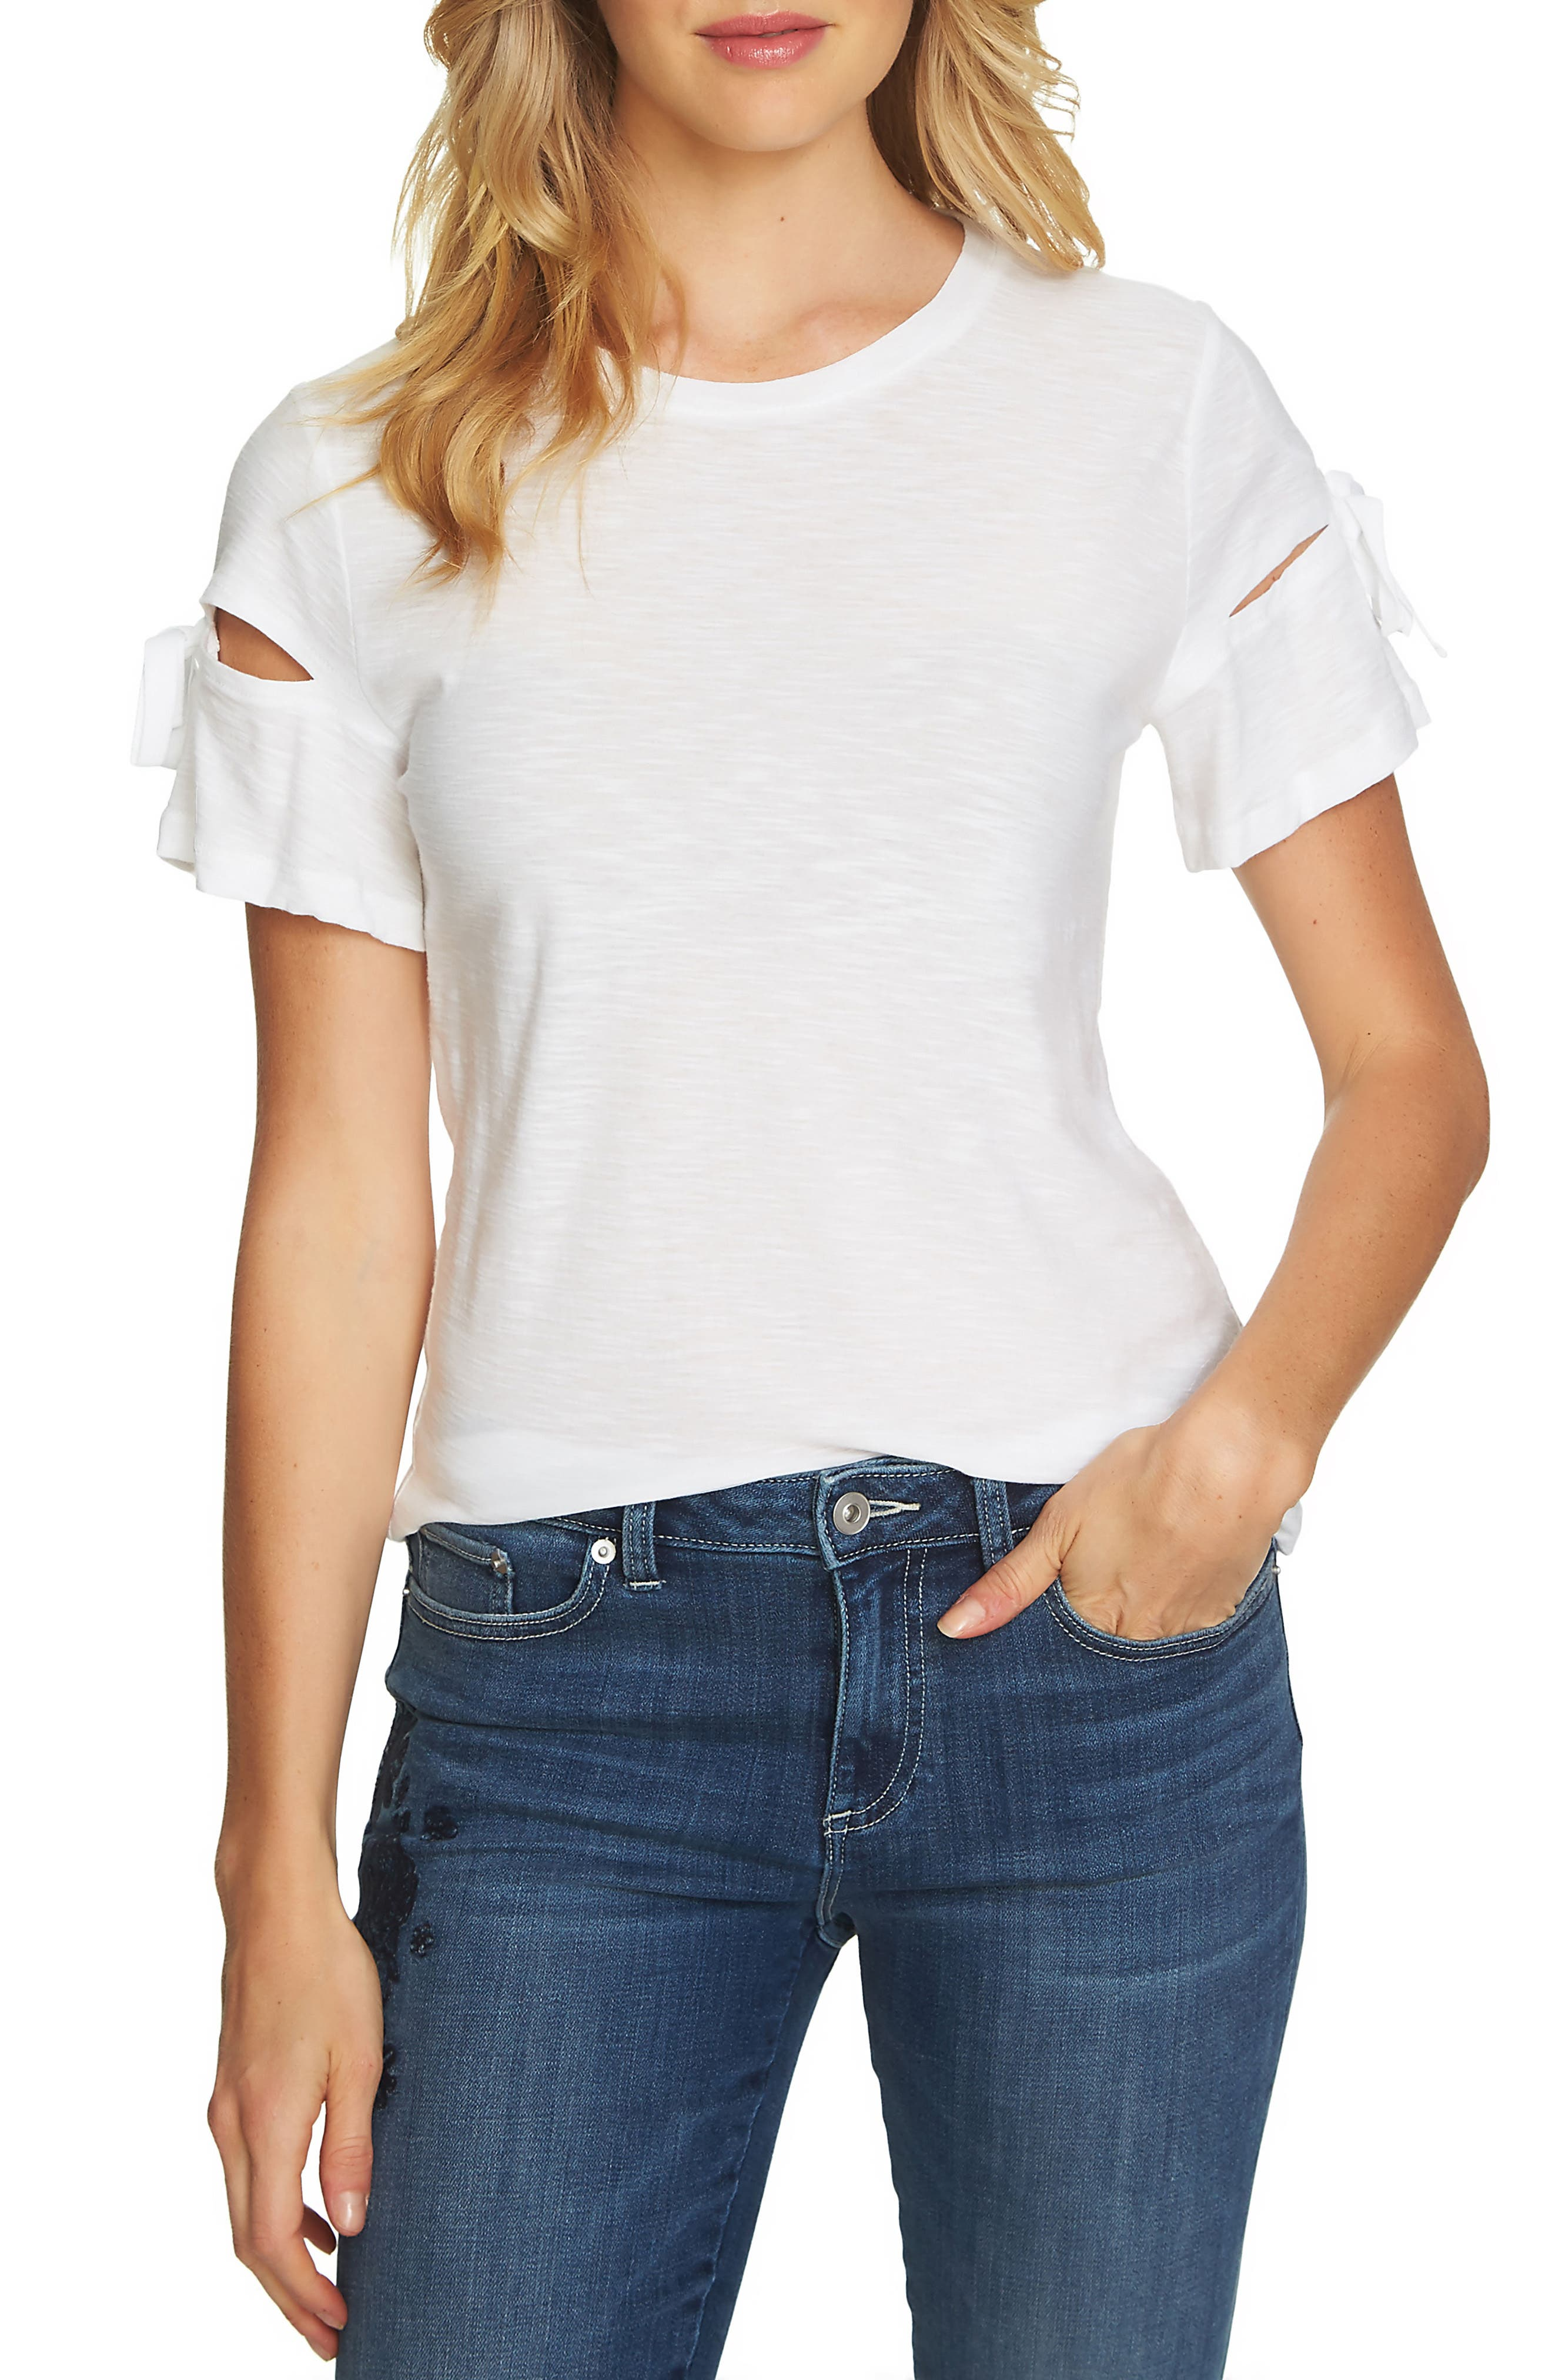 Alternate Image 1 Selected - CeCe Bow Trim Tee